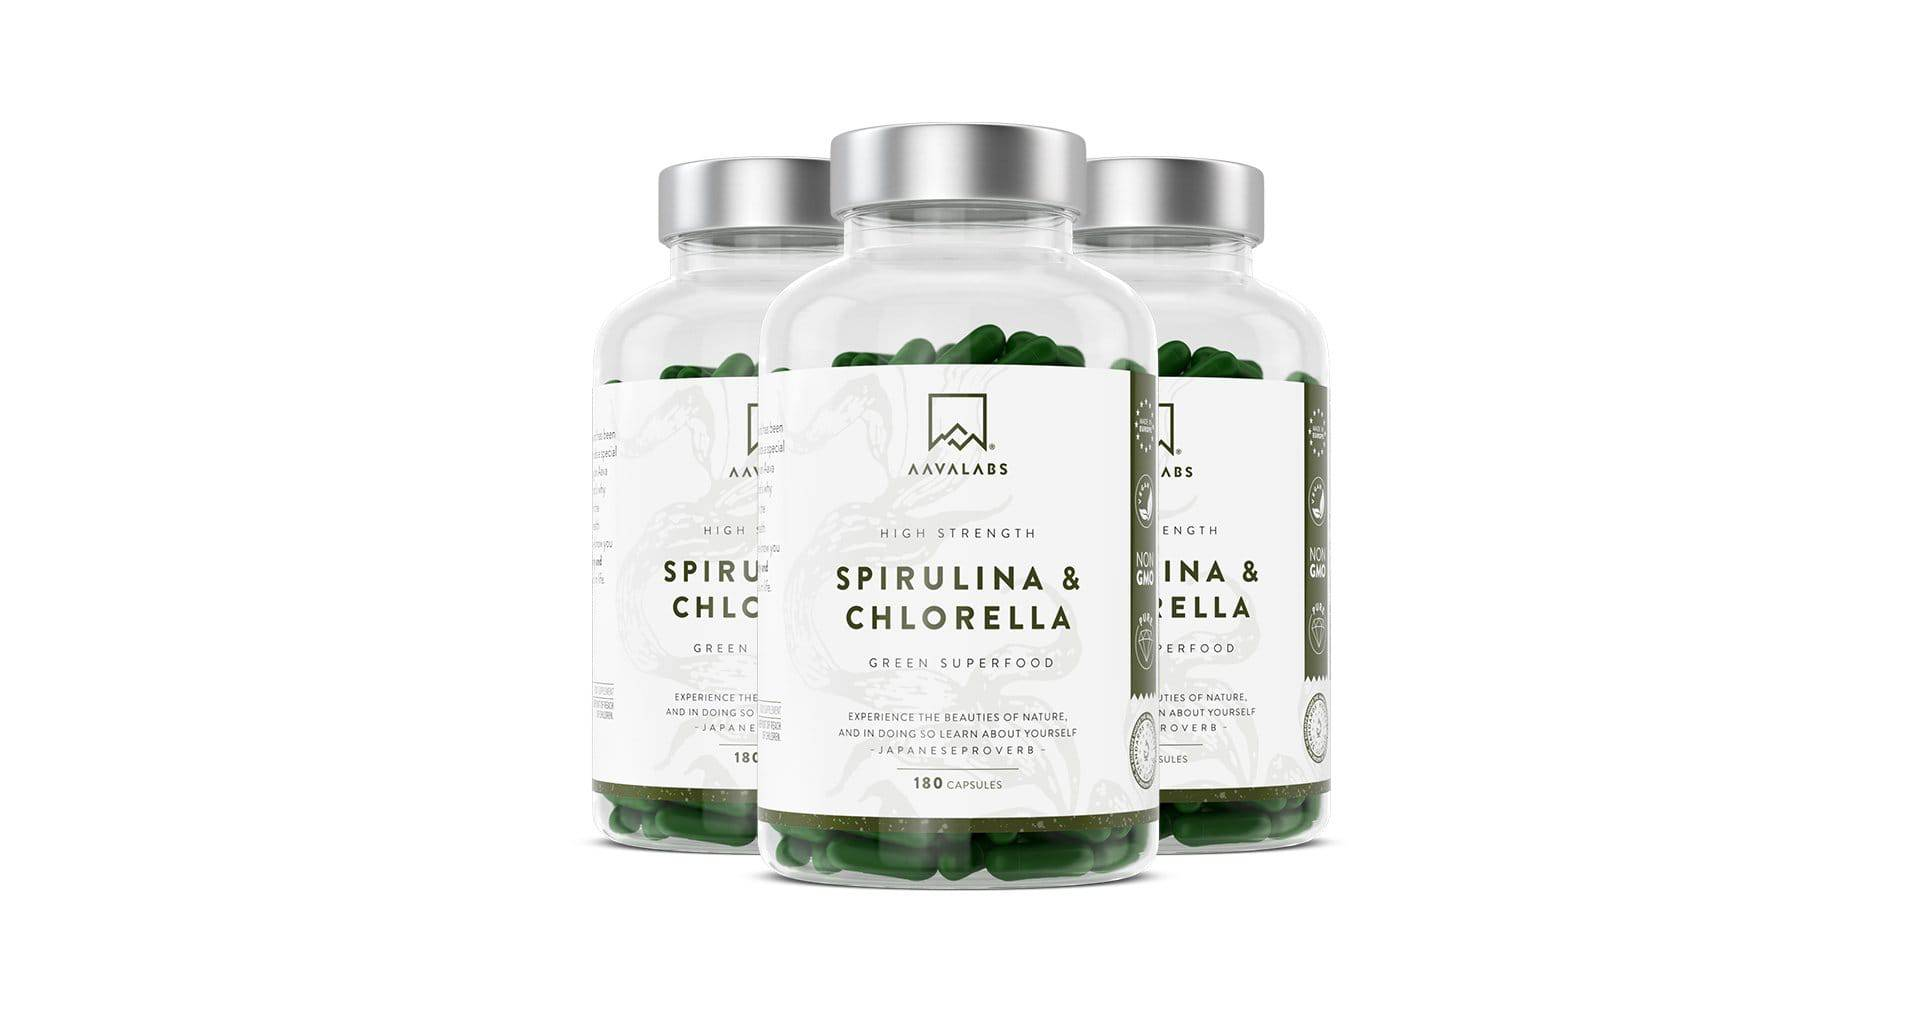 SPIRULINA & CHLORELLA VALUE PACK - 6 MONTHS SUPPLY